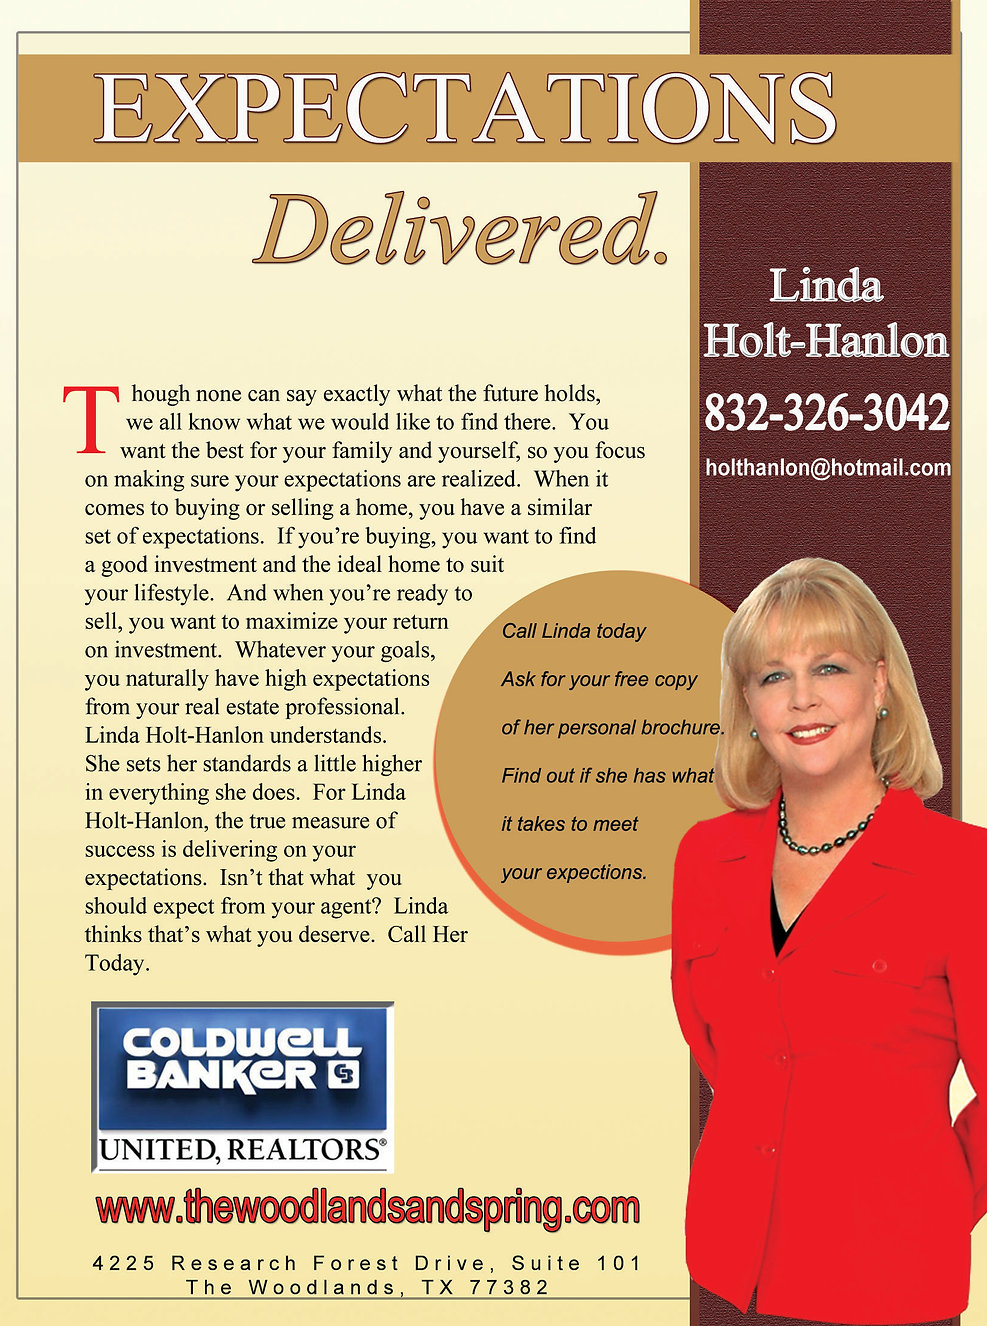 Expectations Delivered, Linda Holt-Hanlon. If you're buying, you want to find a good investment and the ideal home to suit your lifestyle